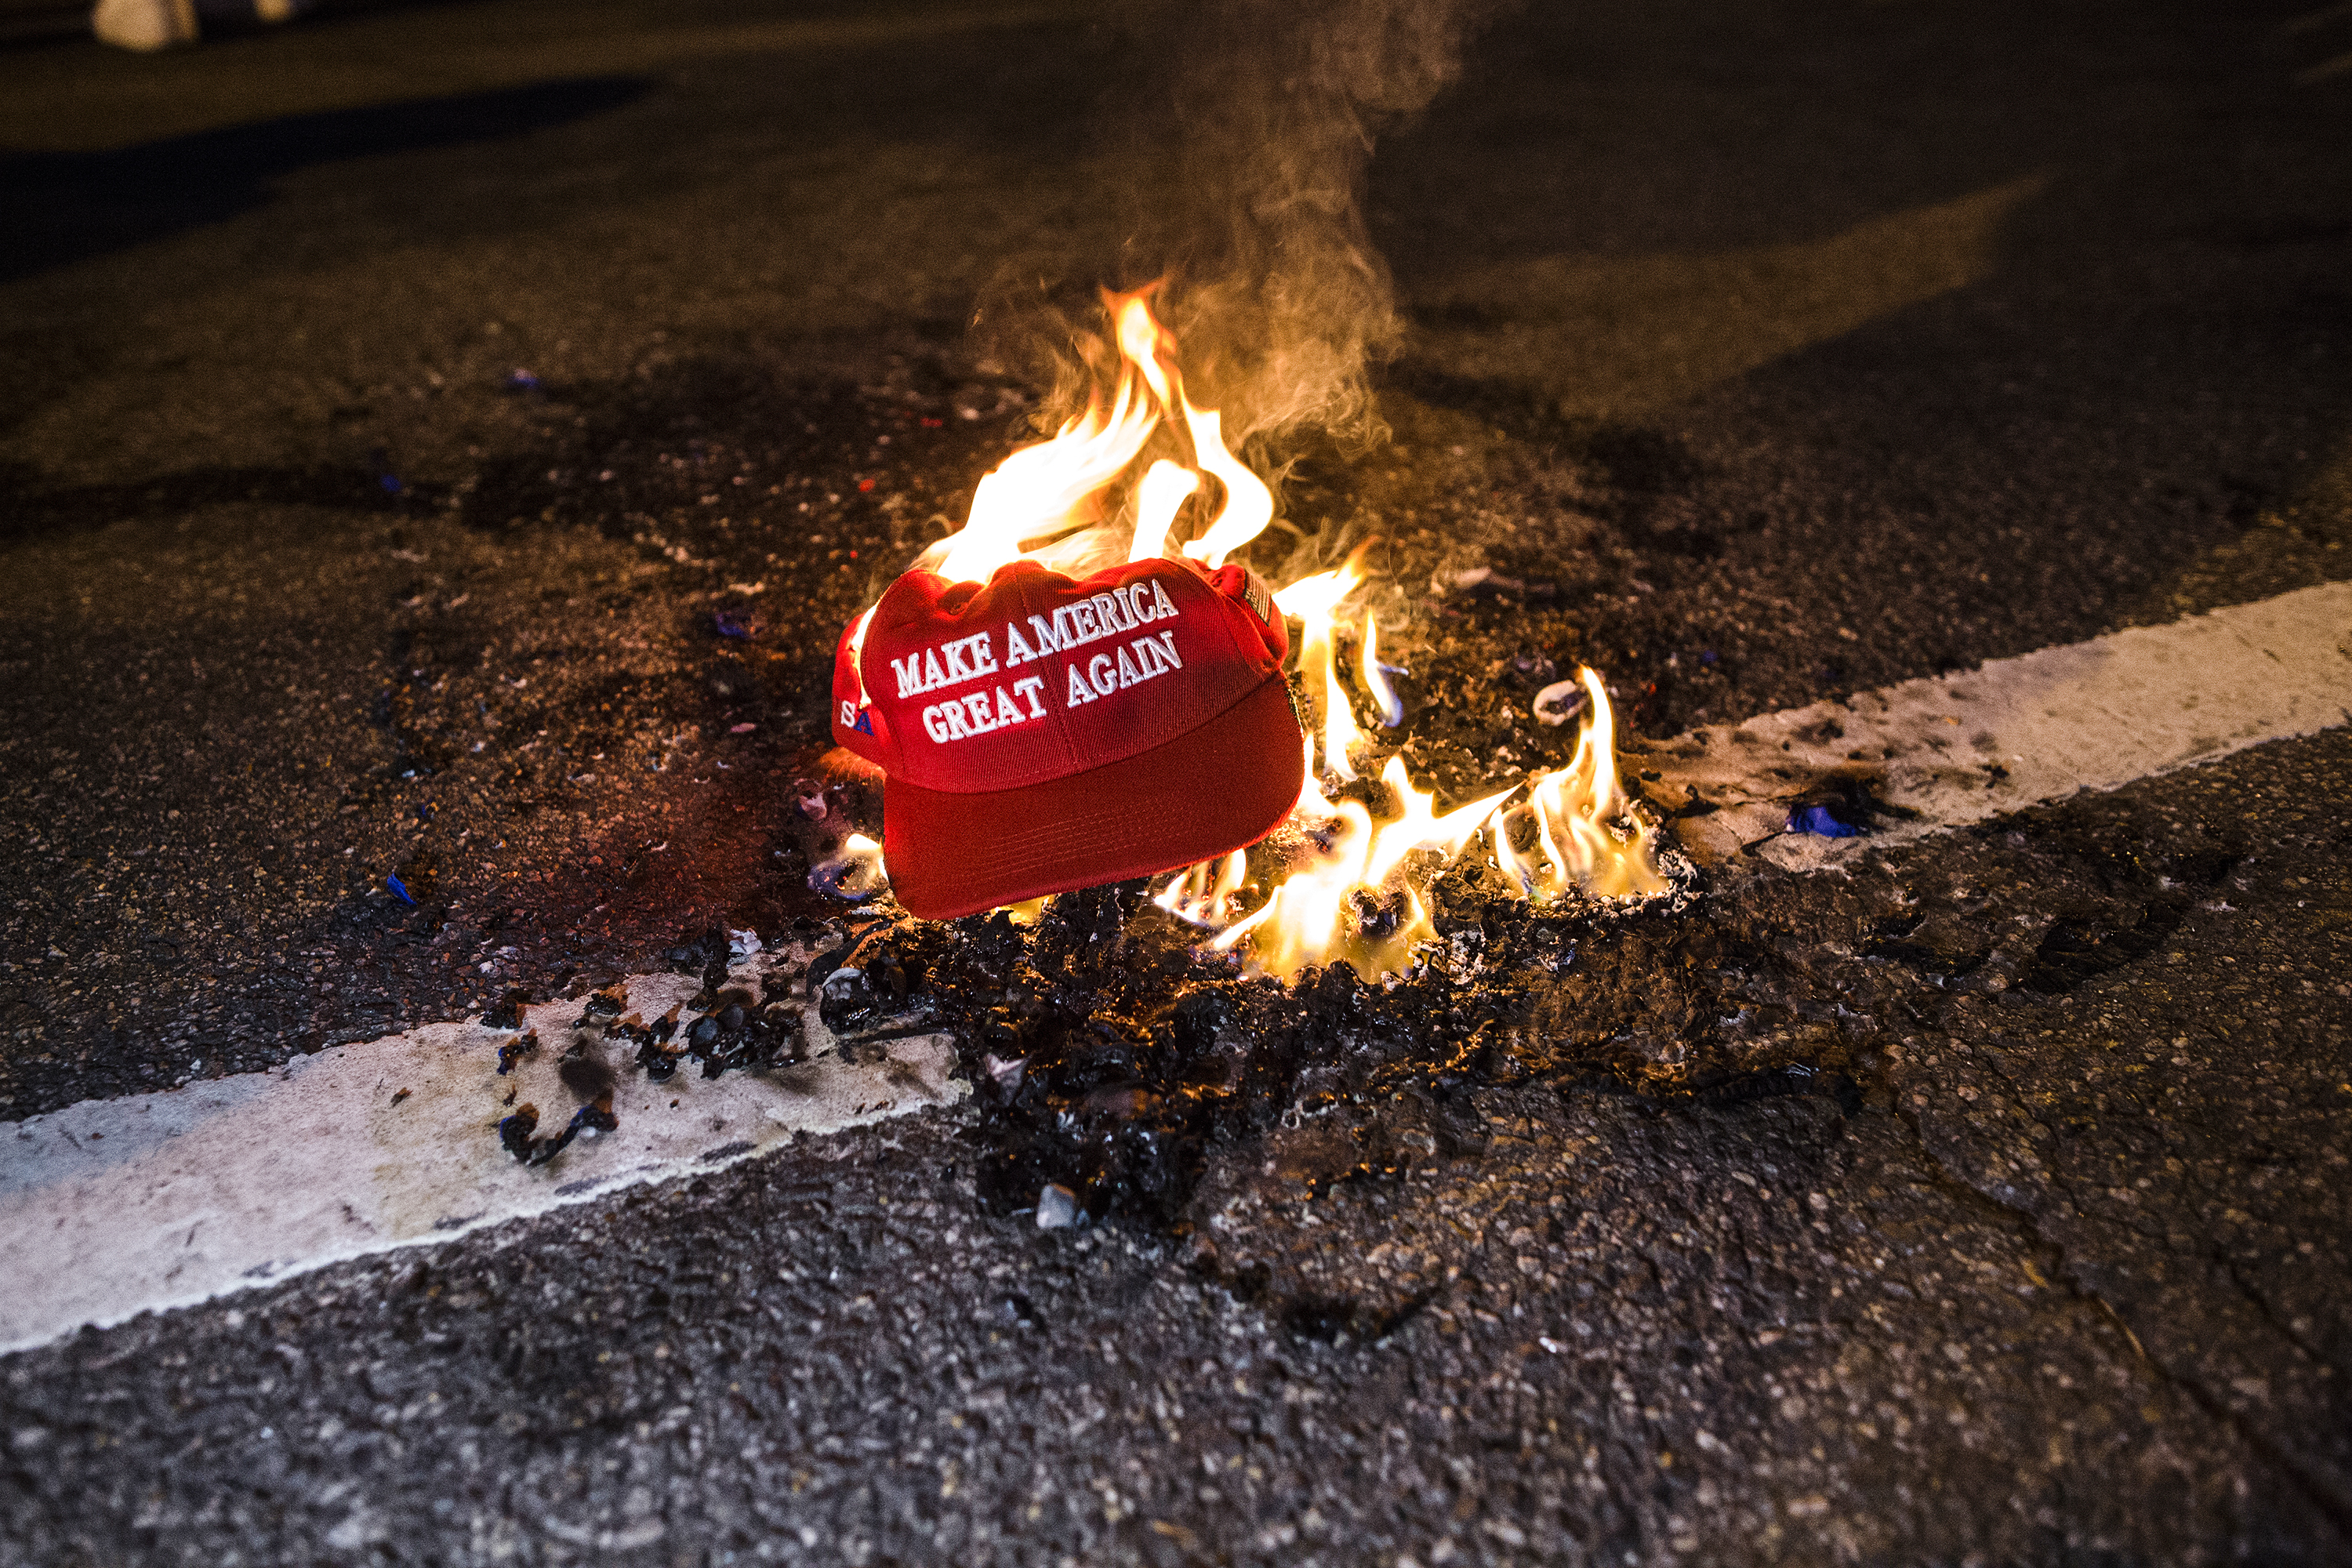 A red MAGA hat on fire in the road.